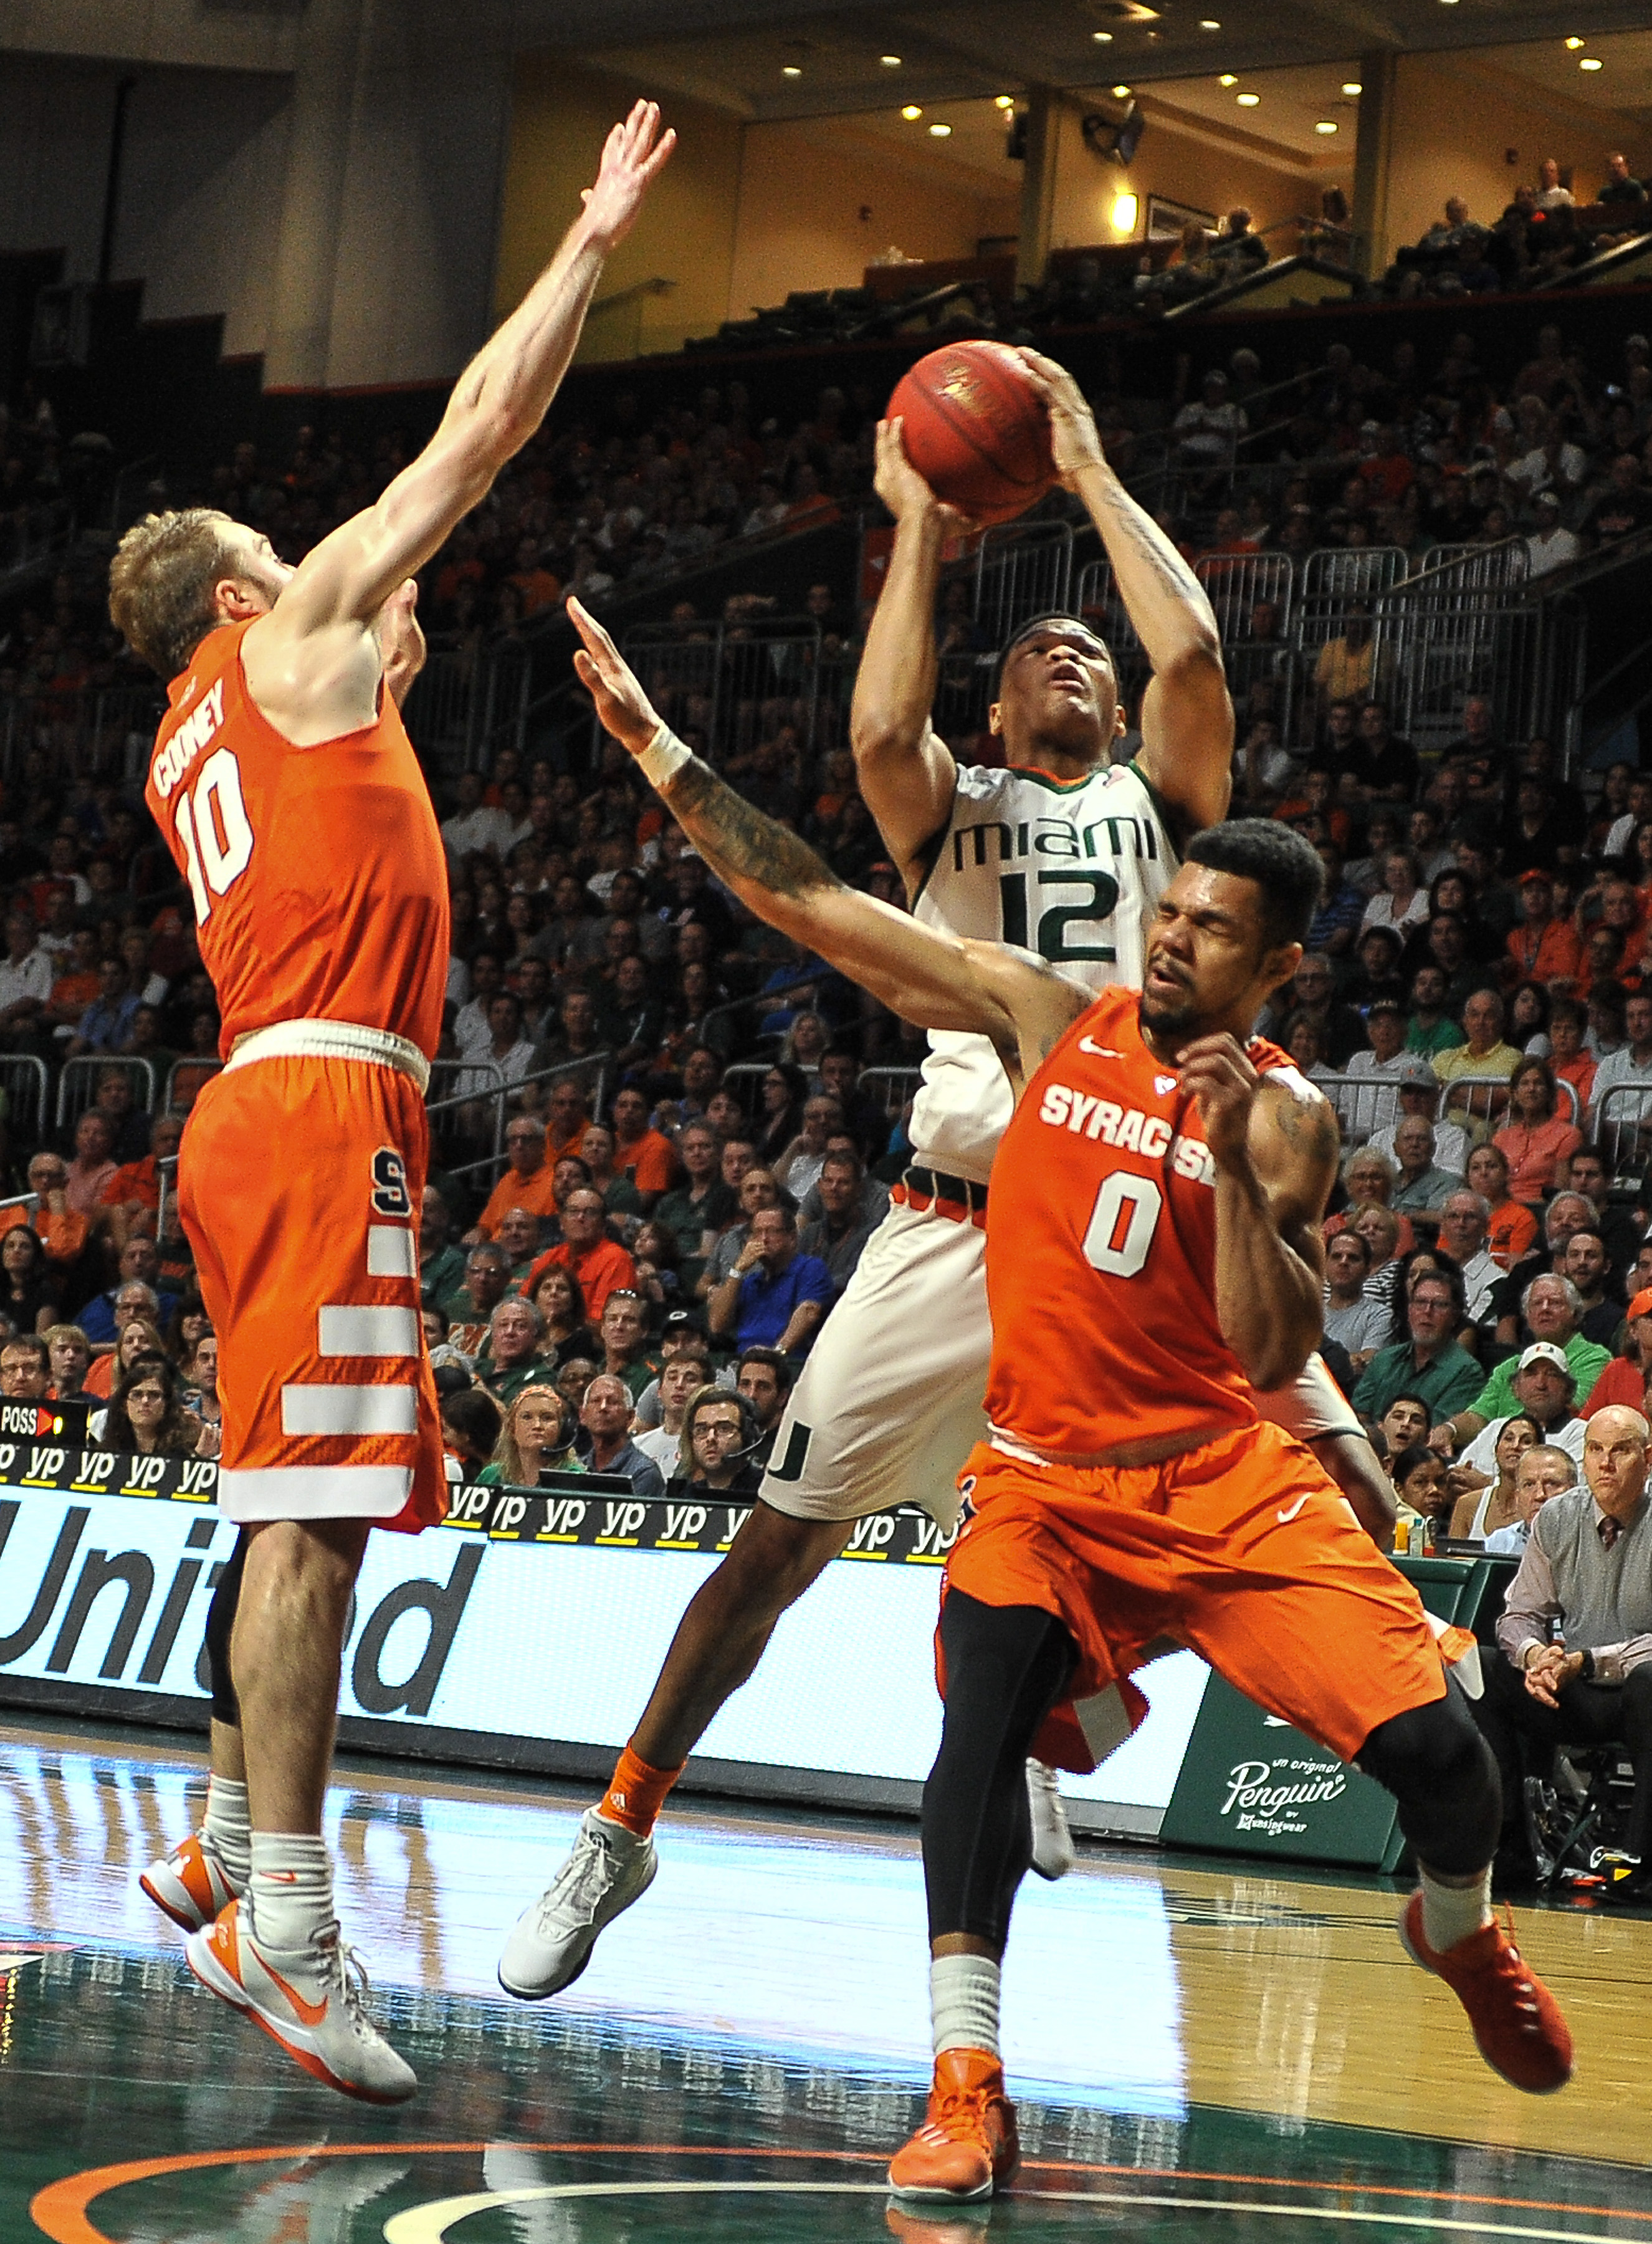 Miami James Palmer goes for shot as Syracuse forward Michael Gbinije and guard Trevor Cooney try to defend during the first half of an NCAA college basketball game in Coral Gables, Fla., Saturday Jan. 2, 2016. (AP Photo/Gaston De Cardenas)